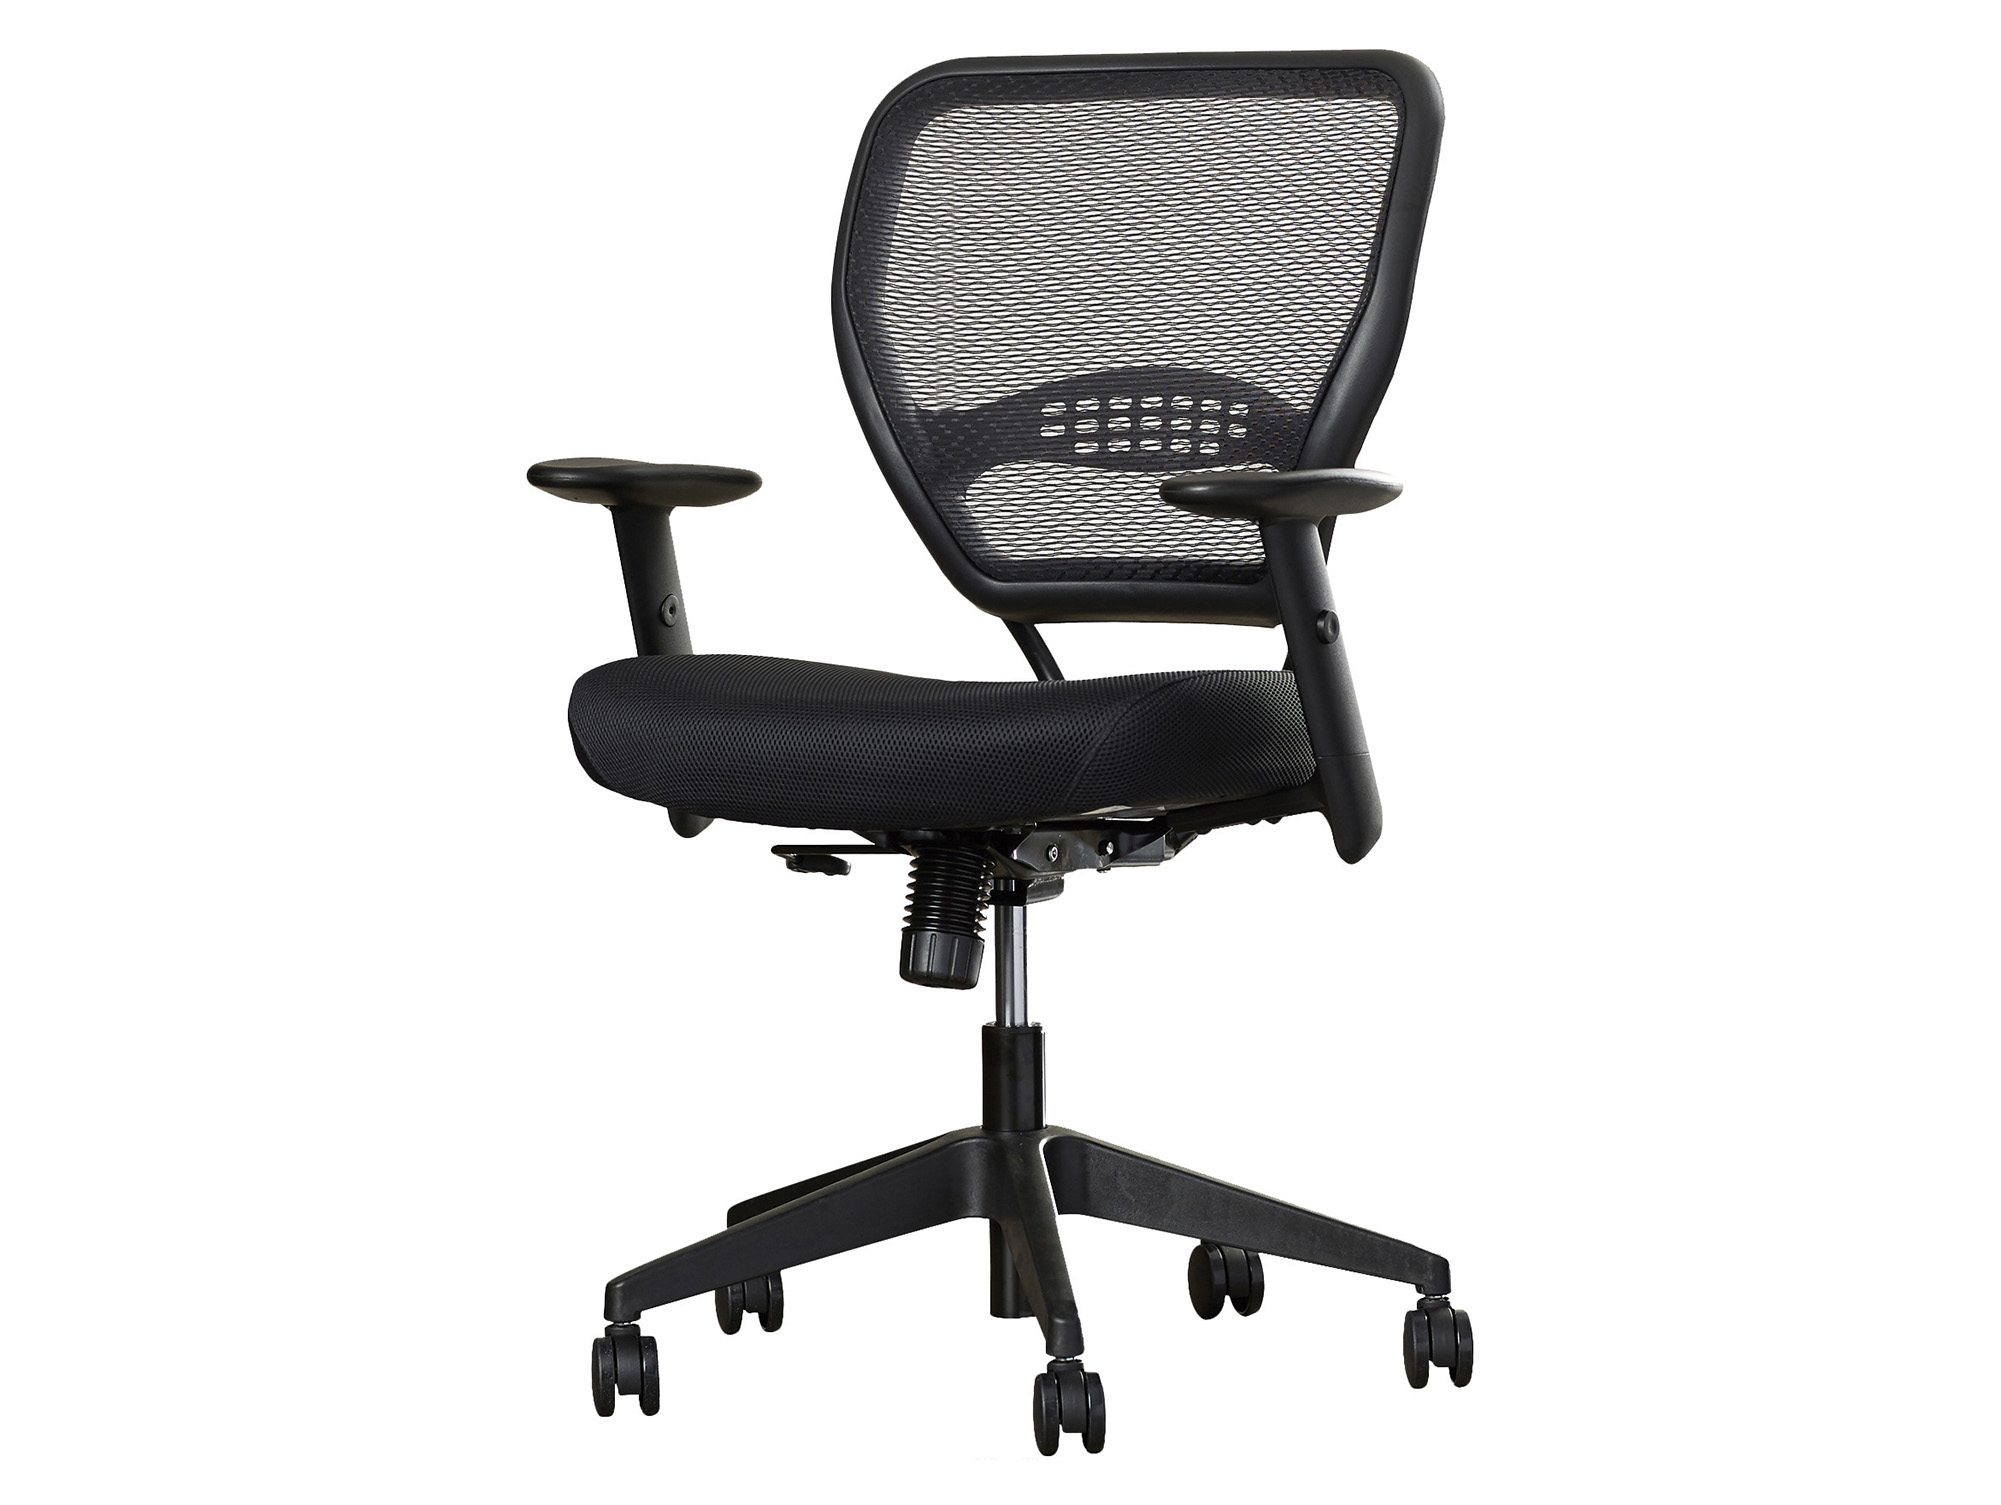 Ergonomic Mesh fice Chair fice Task Chairs Chairs For fice